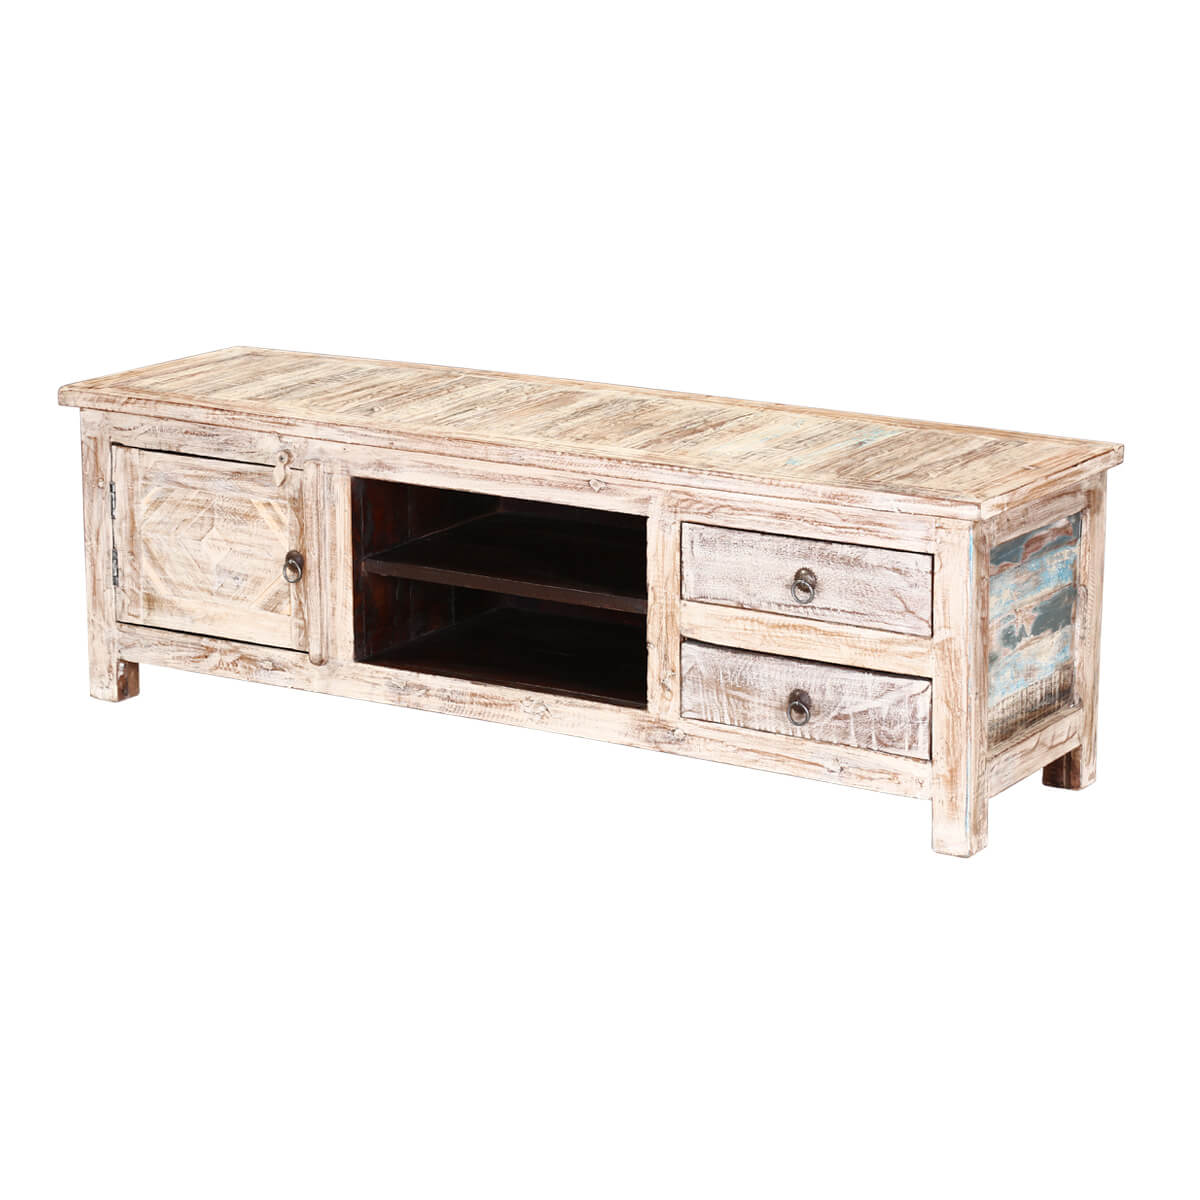 55 Winter White Reclaimed Wood Tv Console Media Cabinet